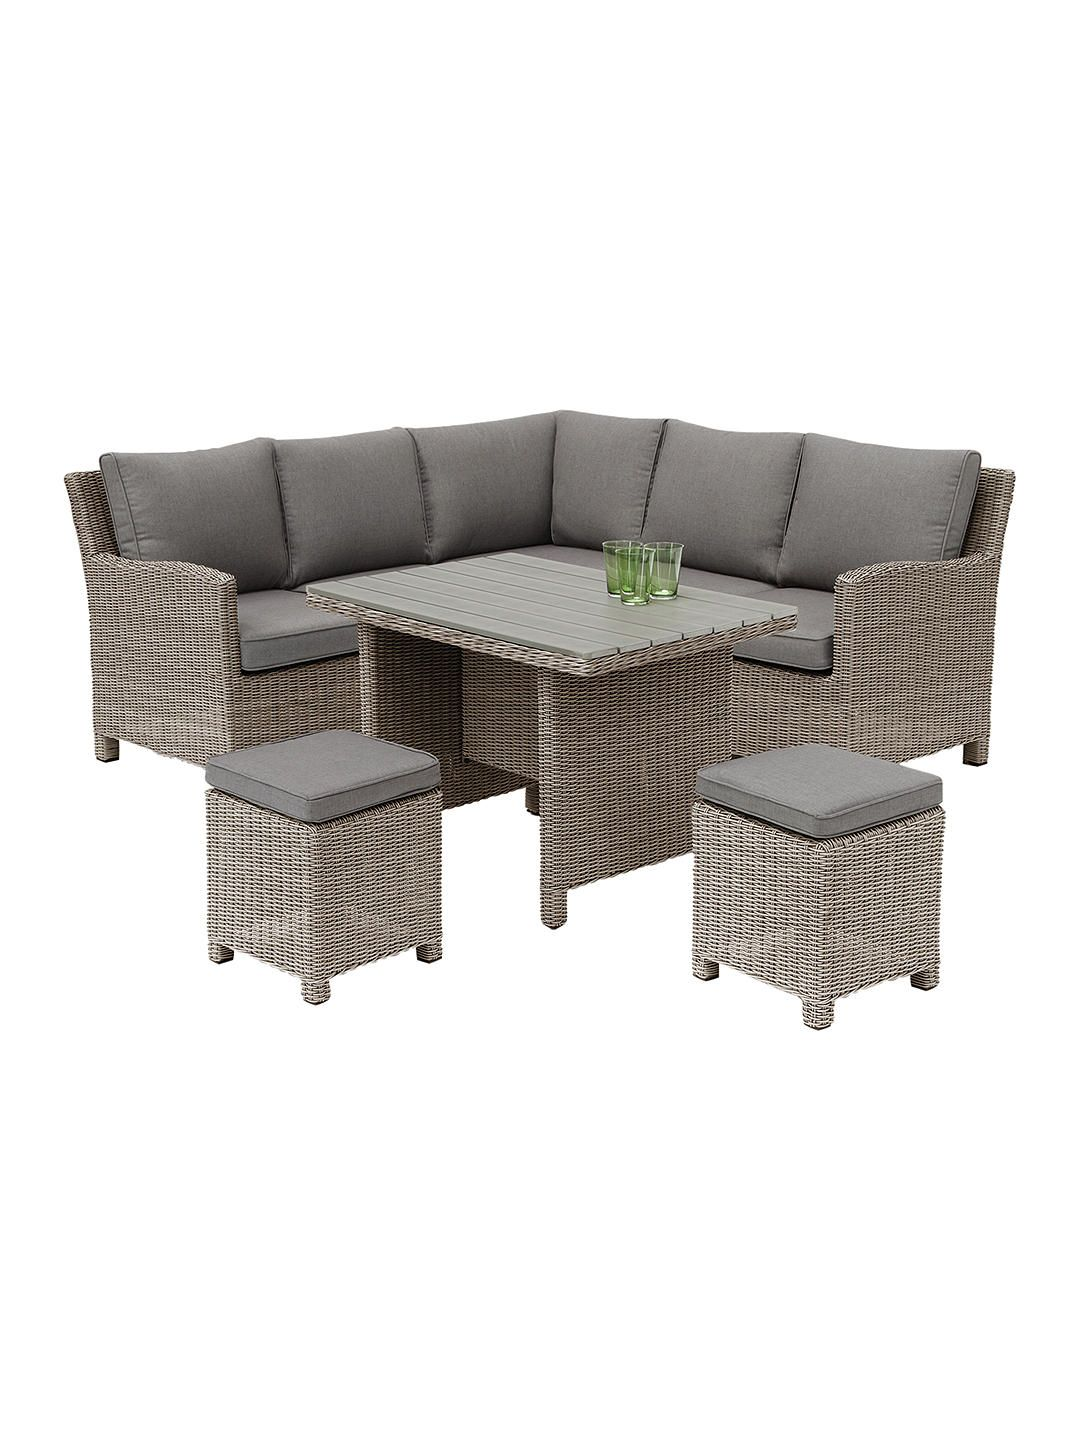 Kettler Palma 6 Seater Garden Mini Corner Table And Chairs Set Rattan In 2020 Table Chair Sets Corner Table Table Chairs